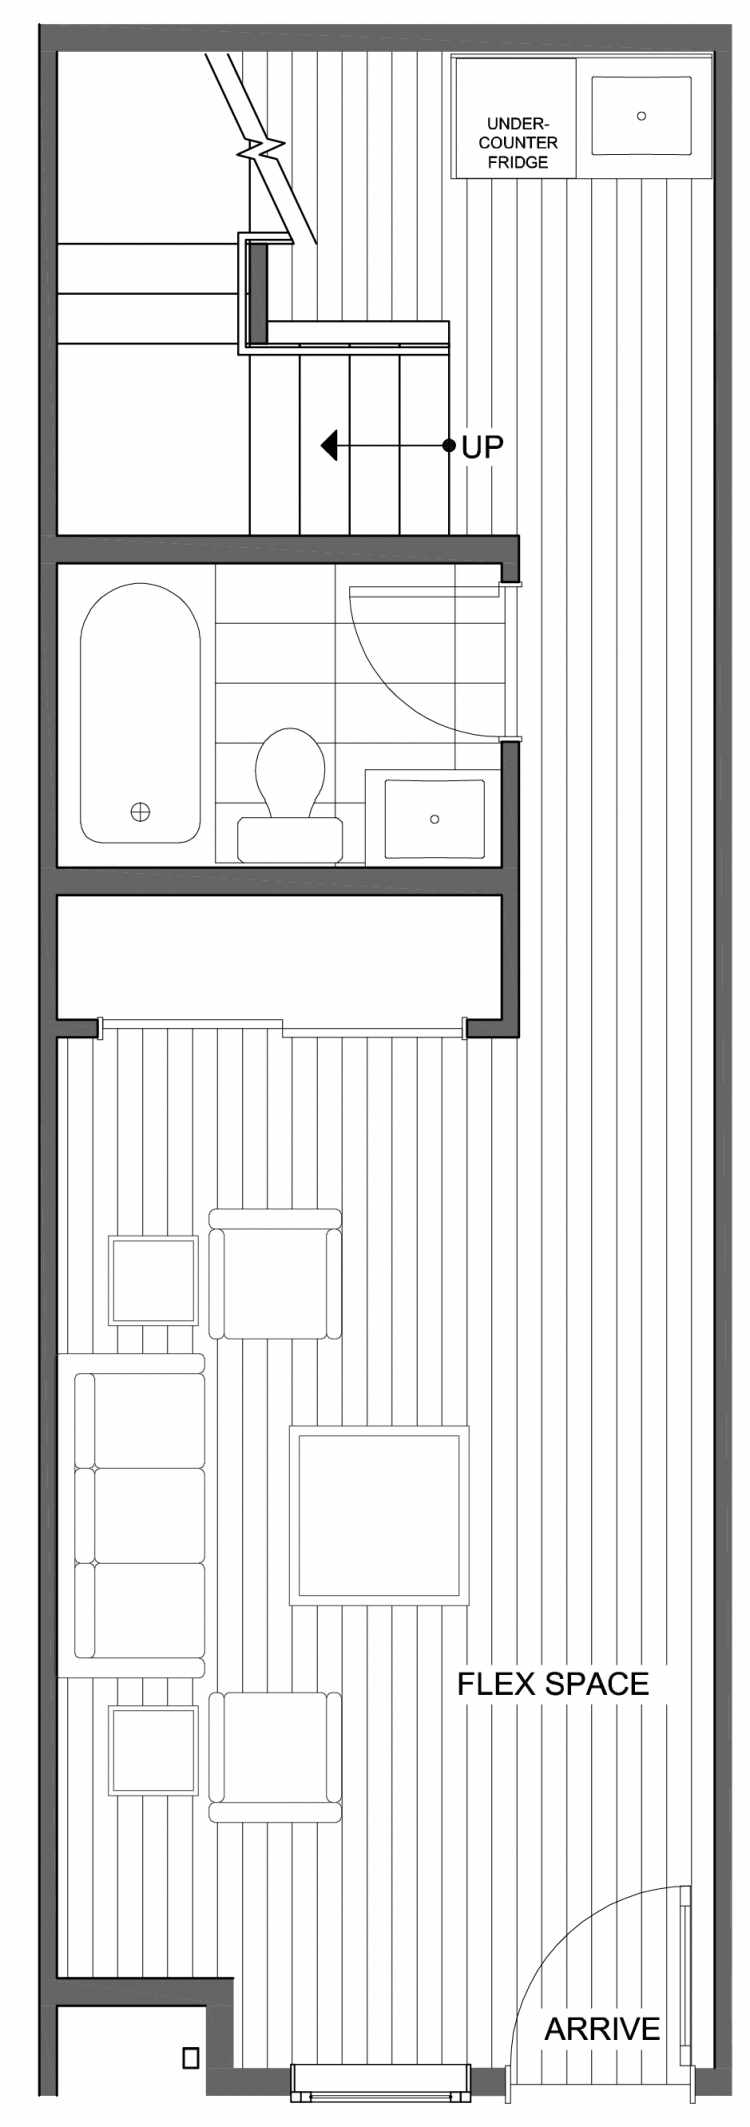 First Floor Plan of 806B N 46th St, One of the Nino 15 East Townhomes by Isola Homes